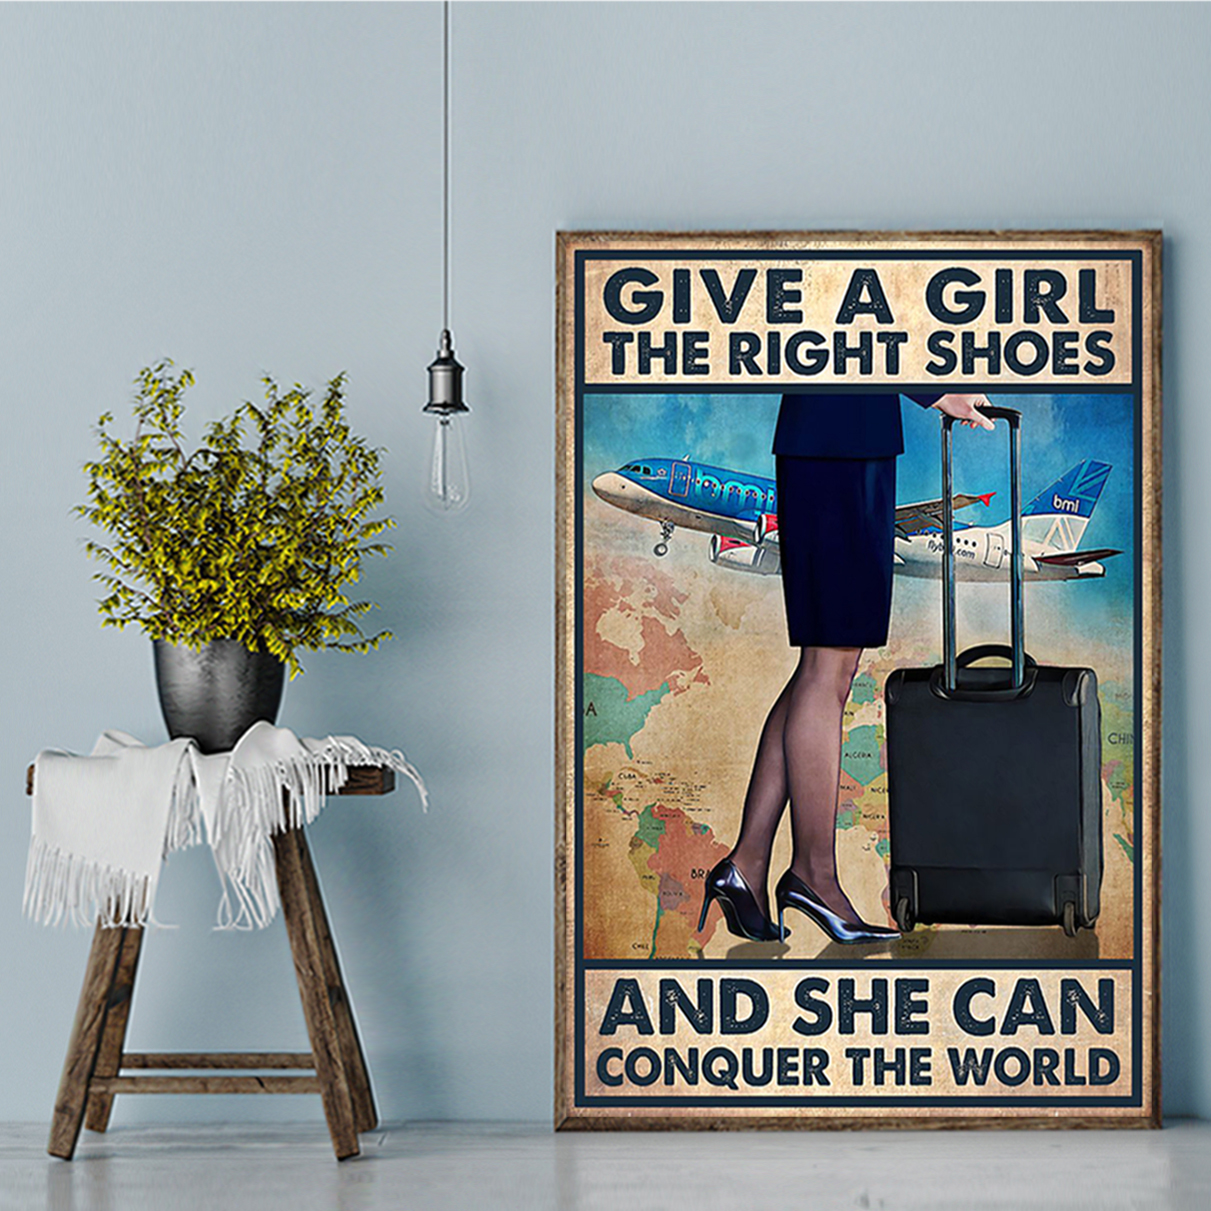 Flight attendant give a girl the right shoes and she can conquer the world poster A2